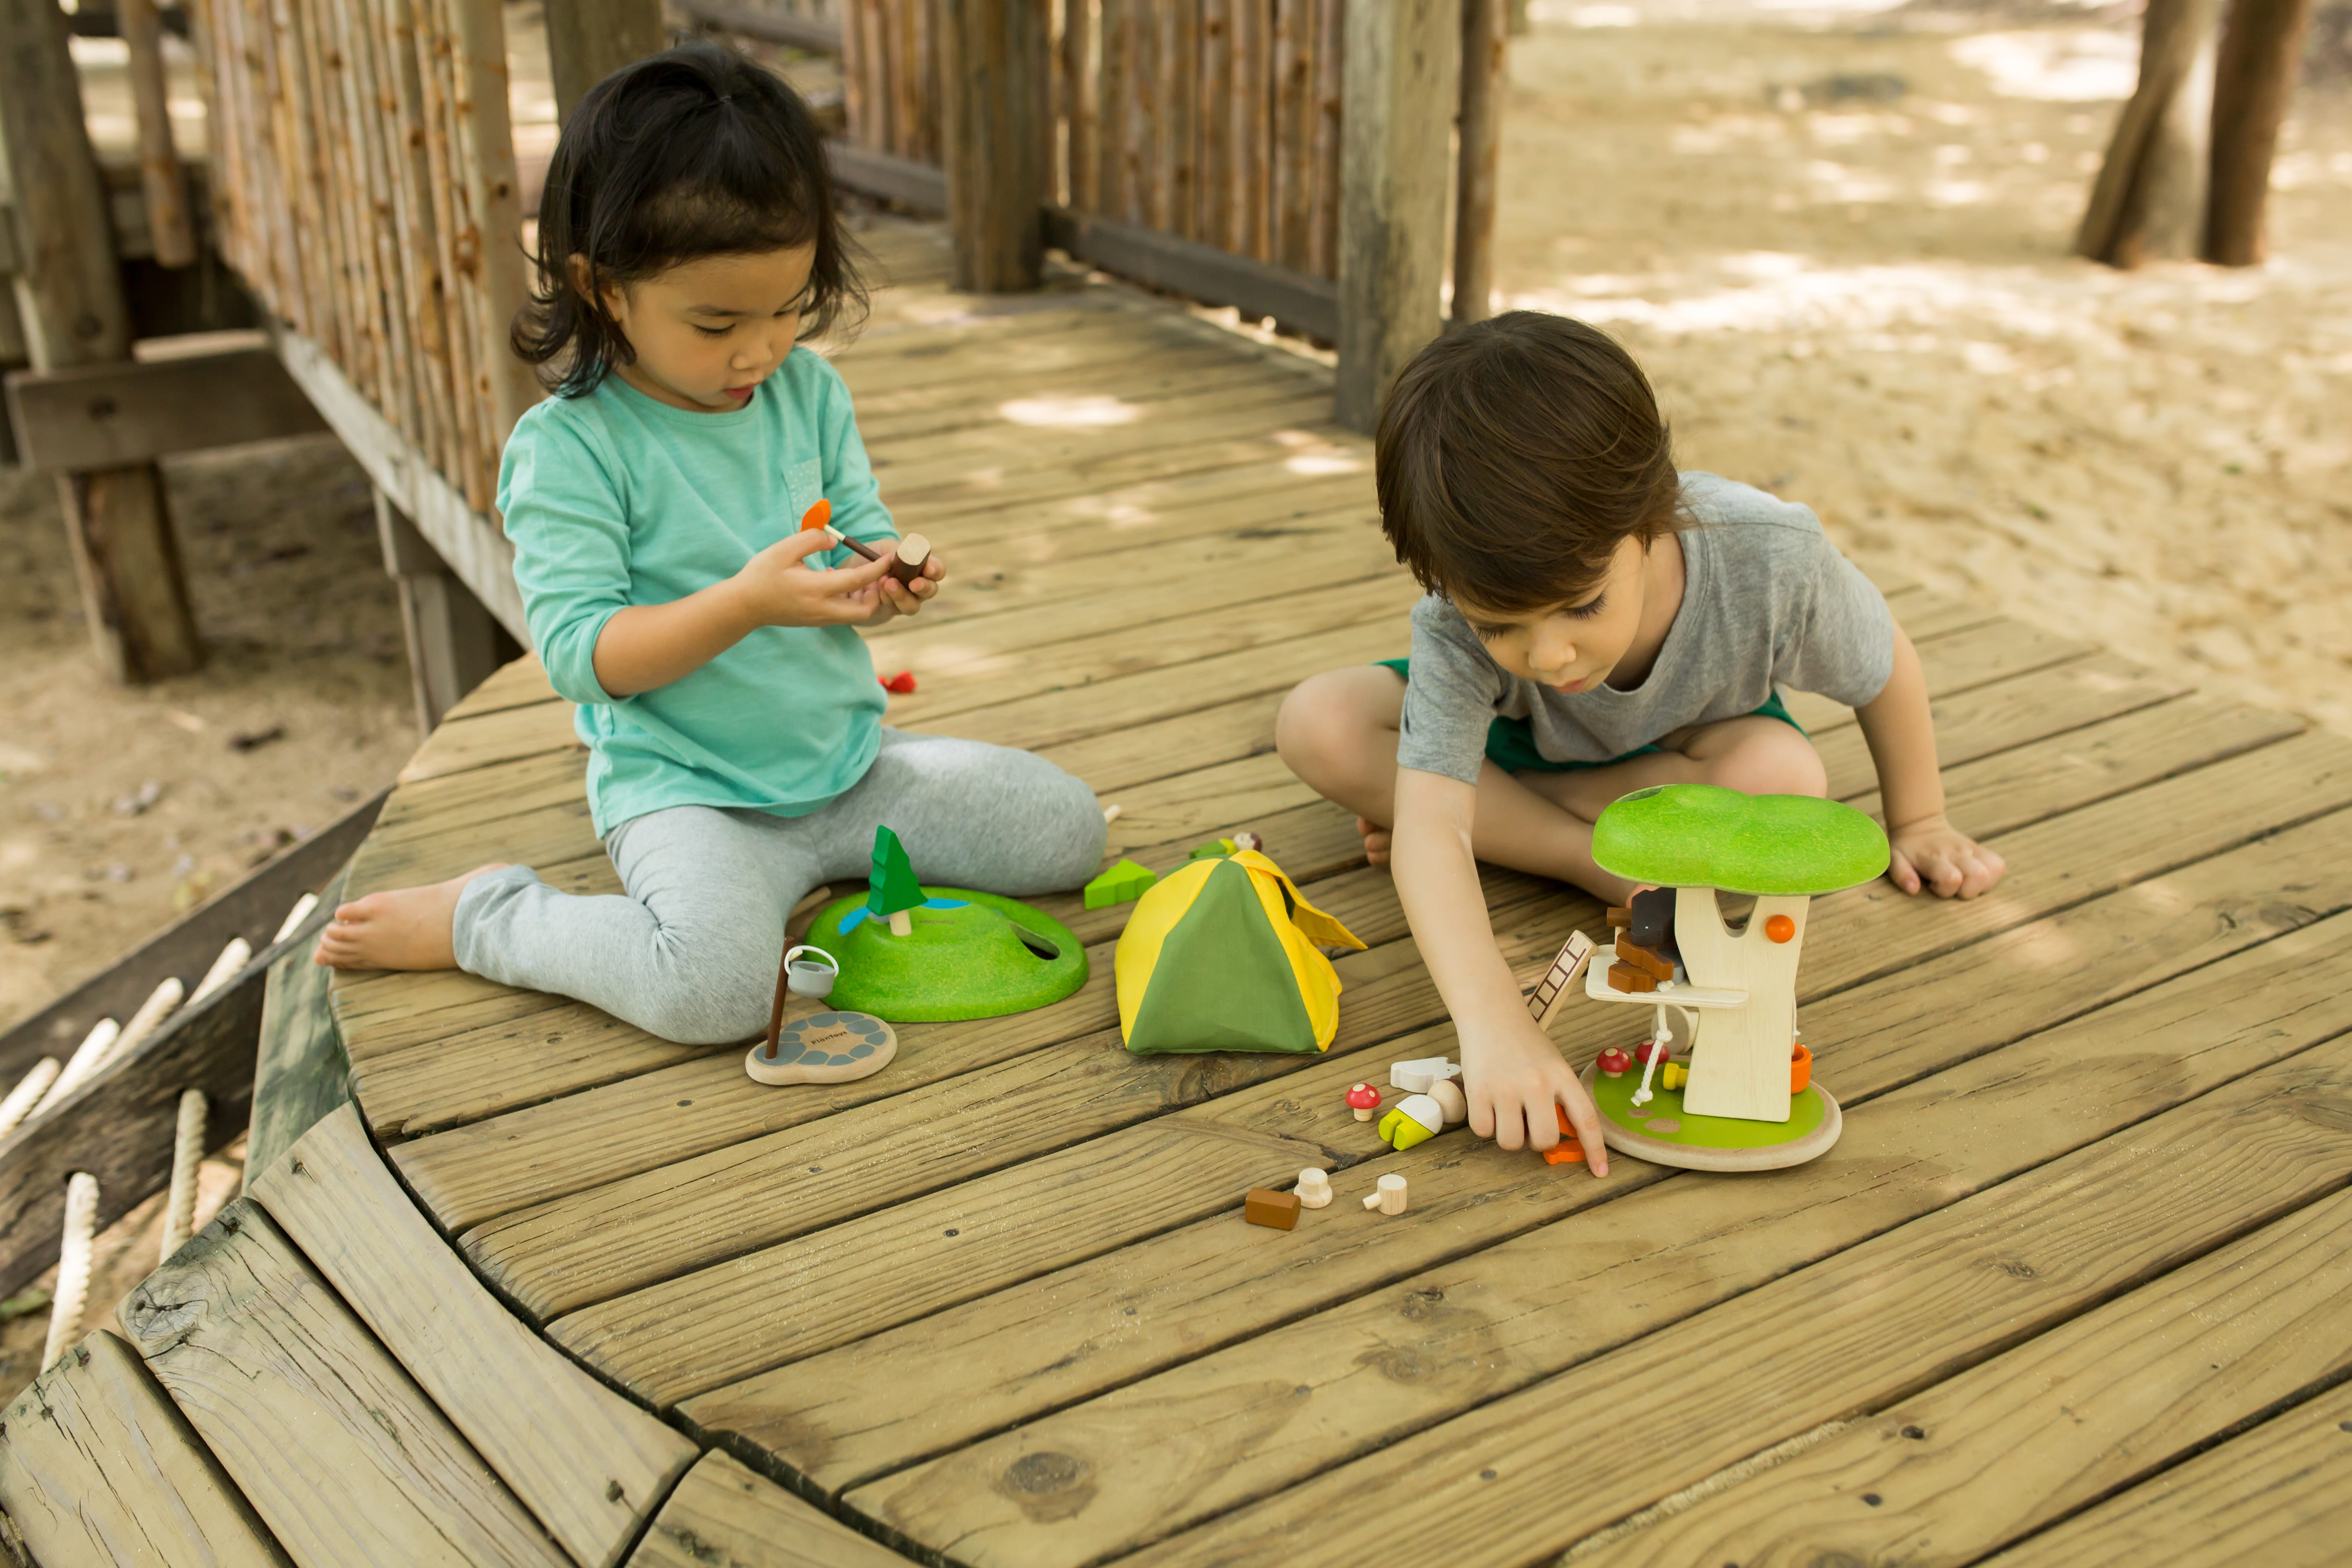 6626_PlanToys_TREE_HOUSE_Pretend_Play_Imagination_Coordination_Language_and_Communications_Social_Fine_Motor_3yrs_Wooden_toys_Education_toys_Safety_Toys_Non-toxic_1.jpg